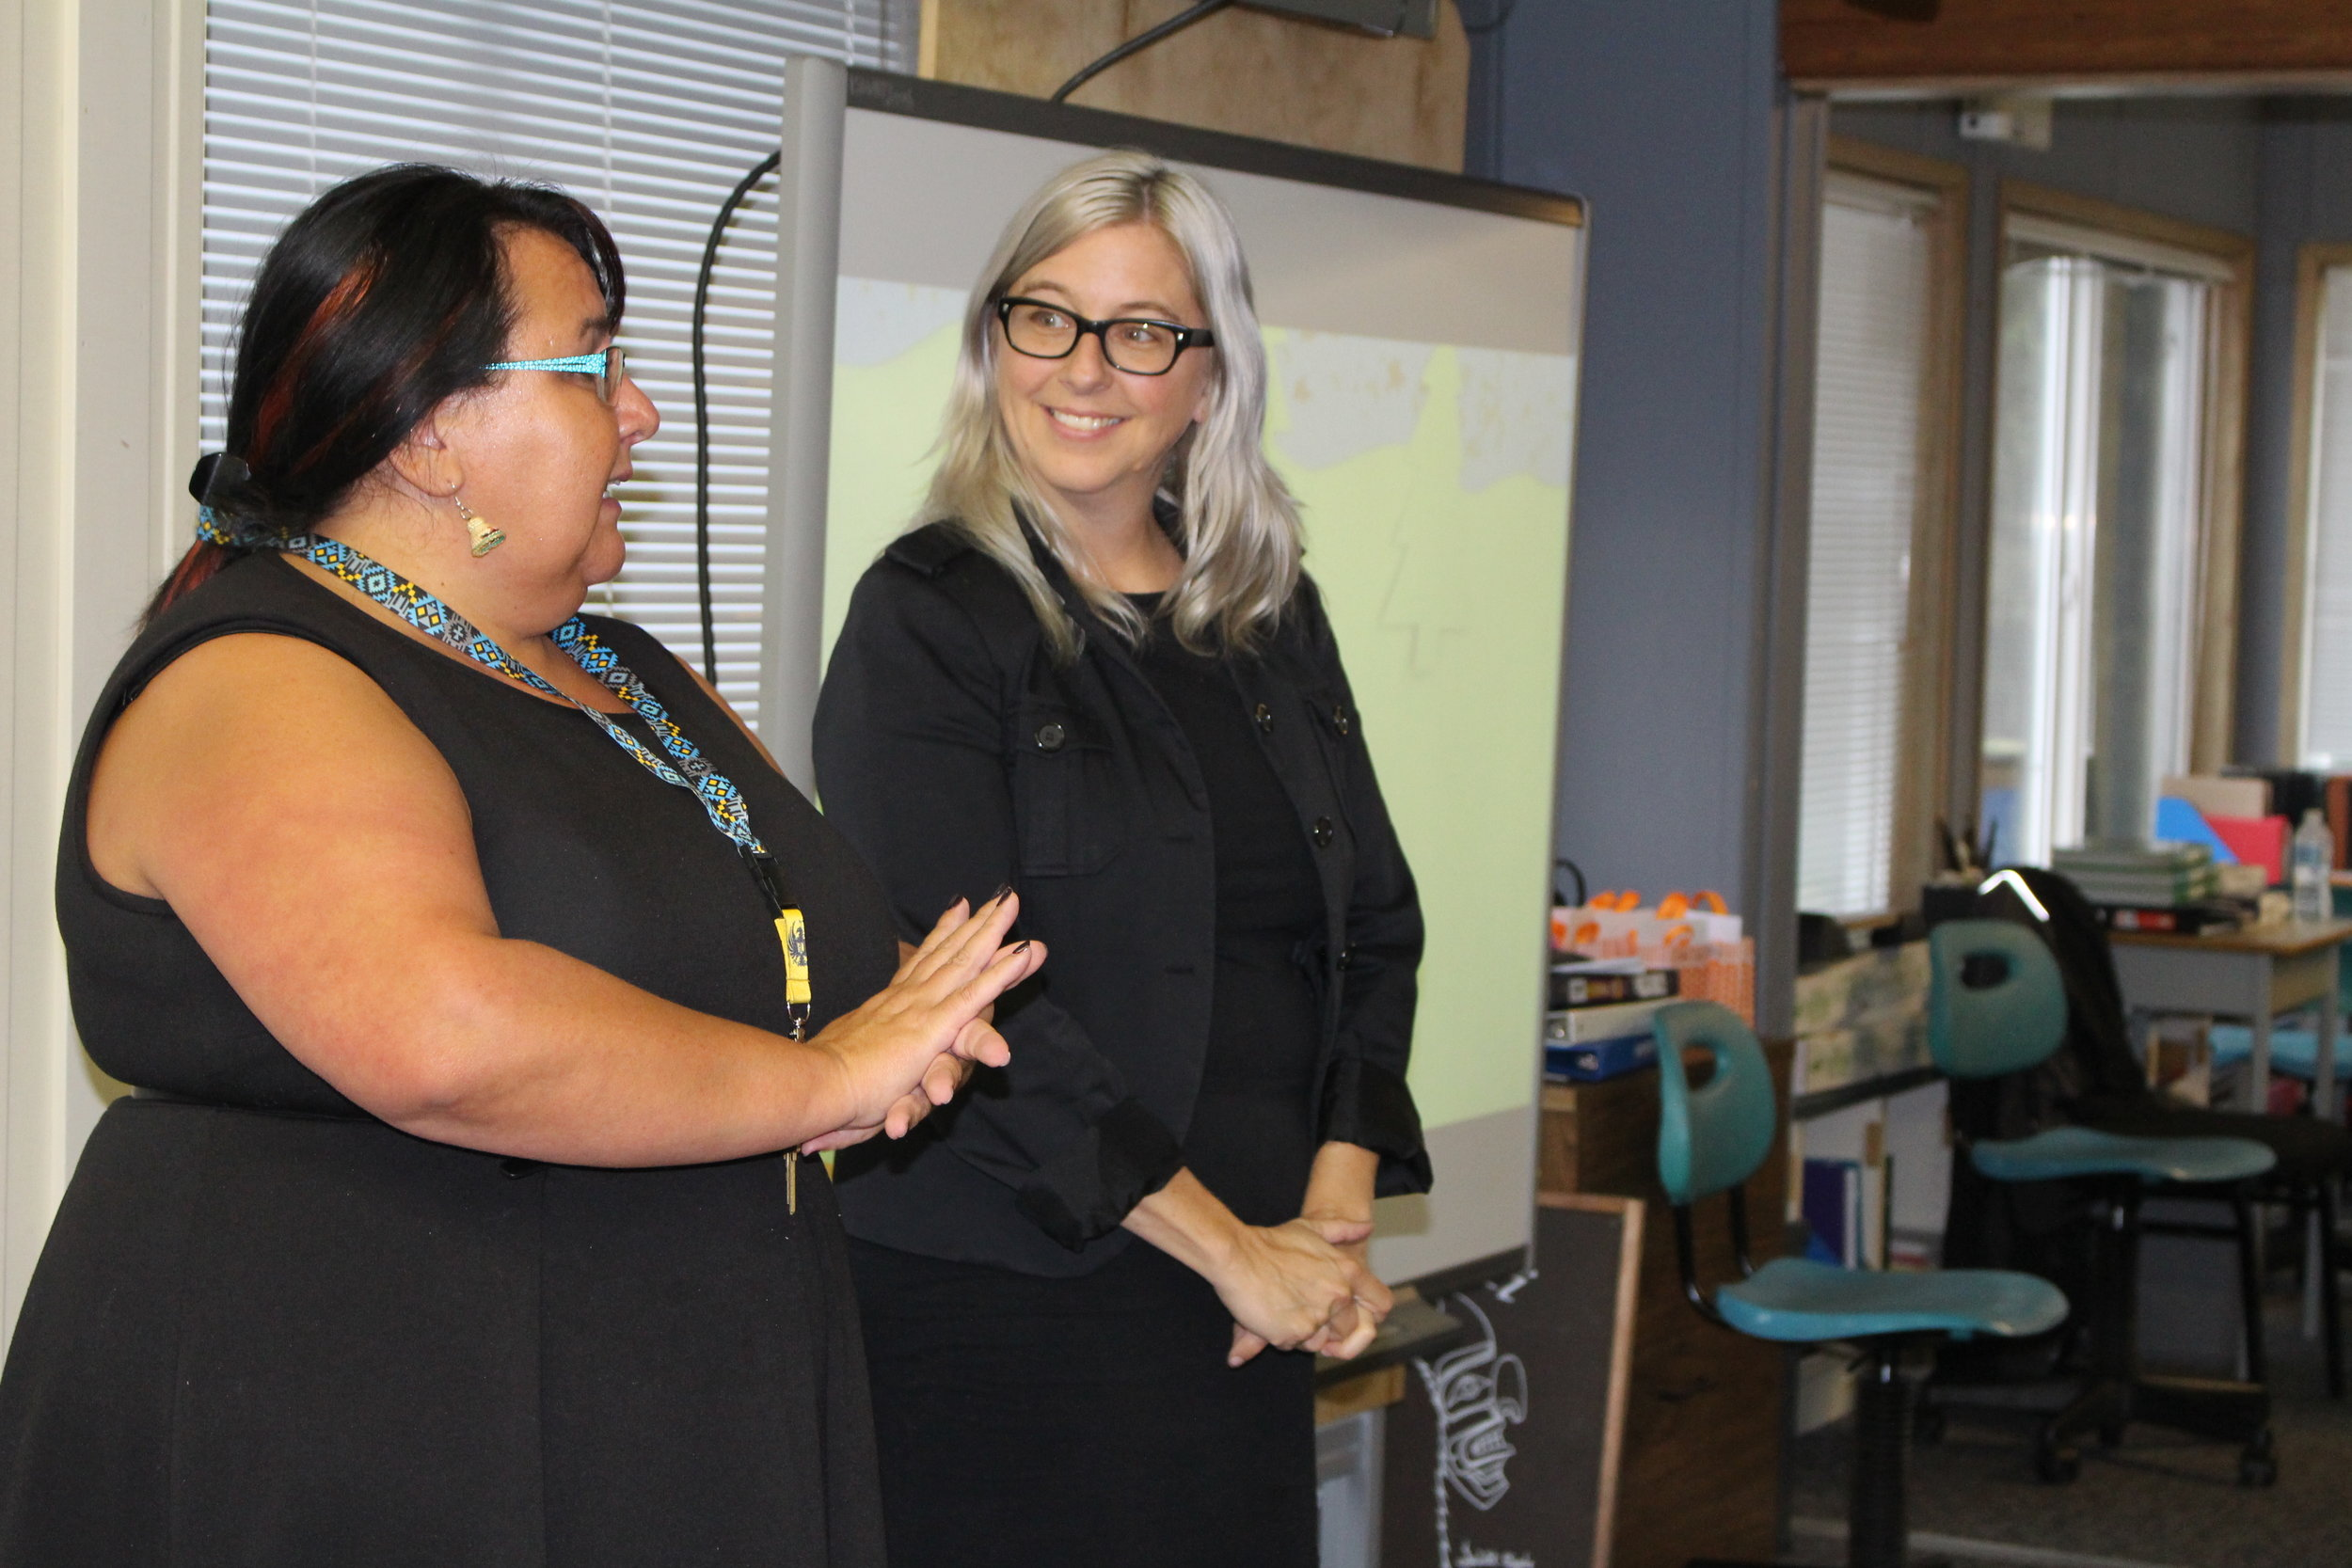 Leah says nice things about the Our World program and young people, while mentor Lisa g looks on in respect!